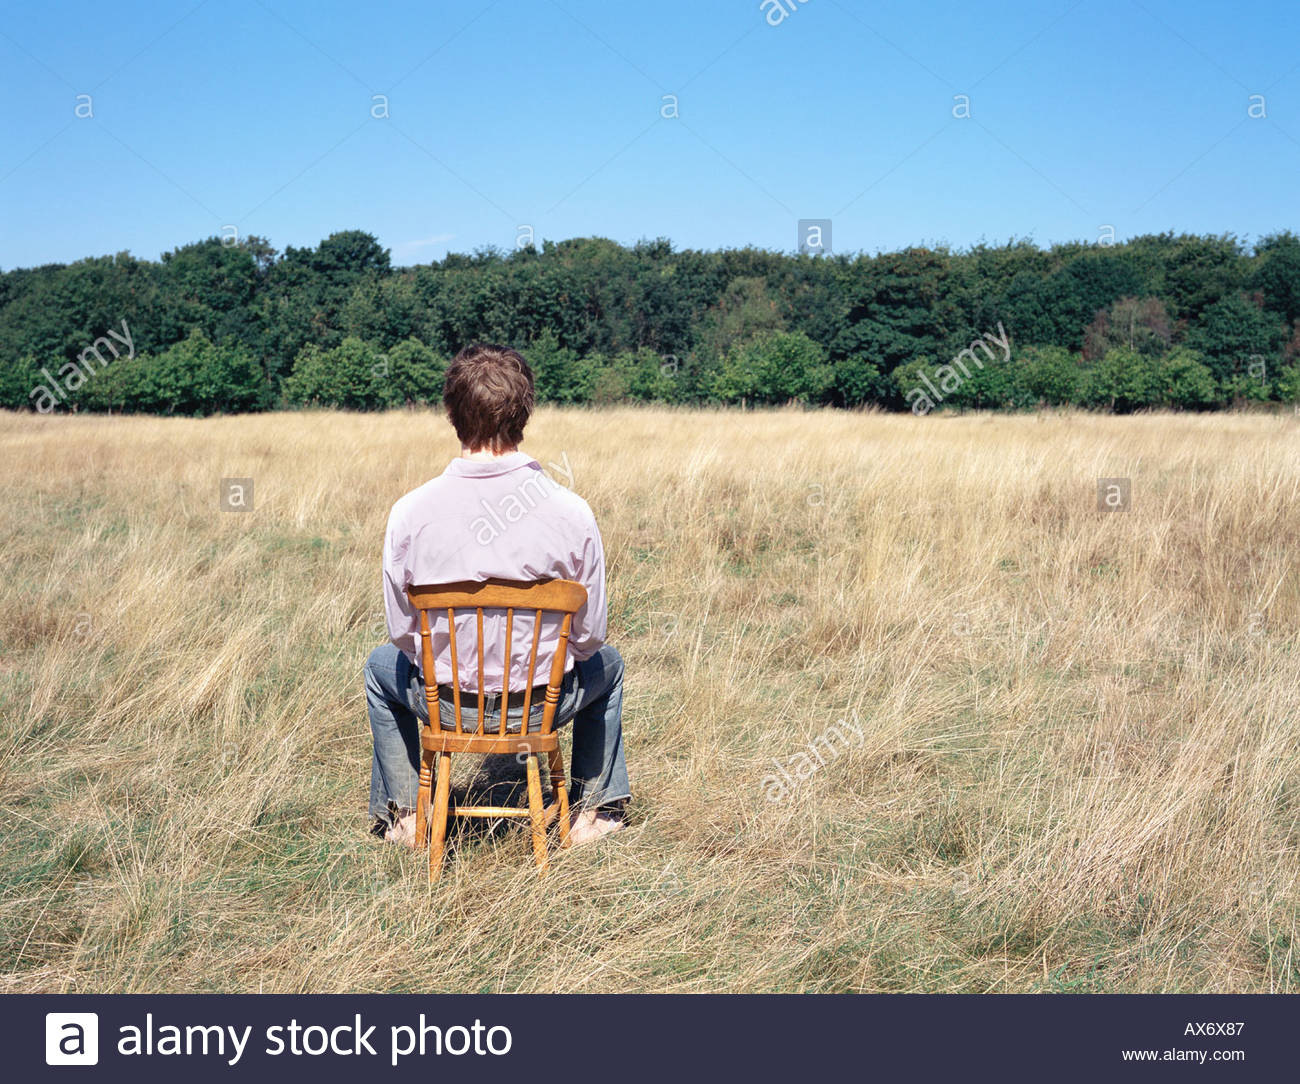 Man sitting on a chair in a field Stock Photo